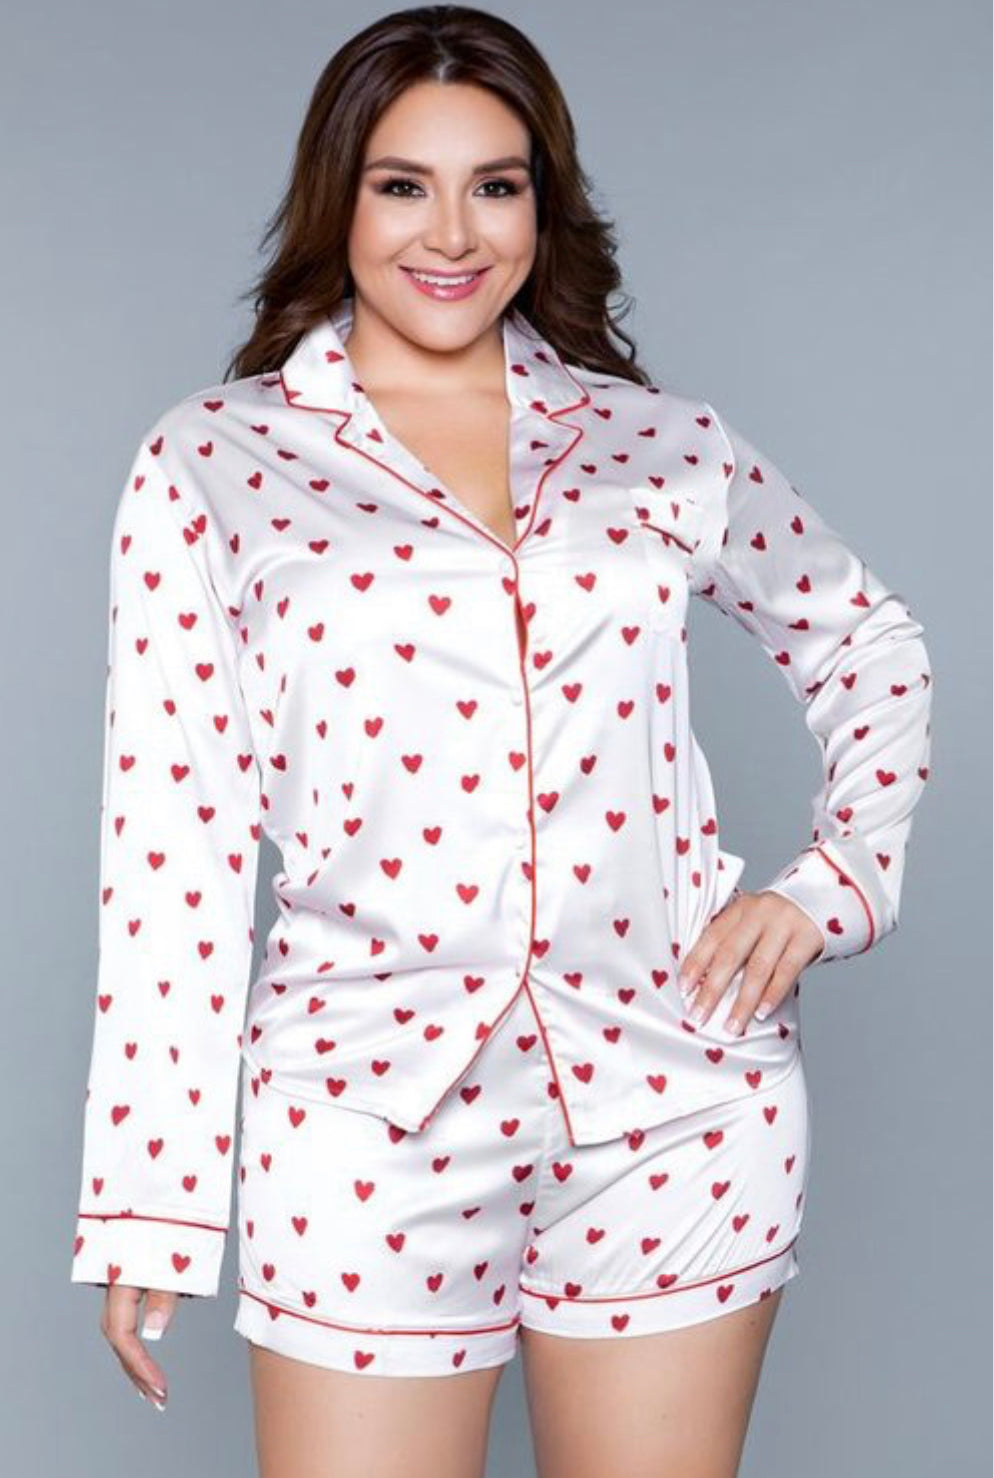 Satin Heart Short Set Pajamas